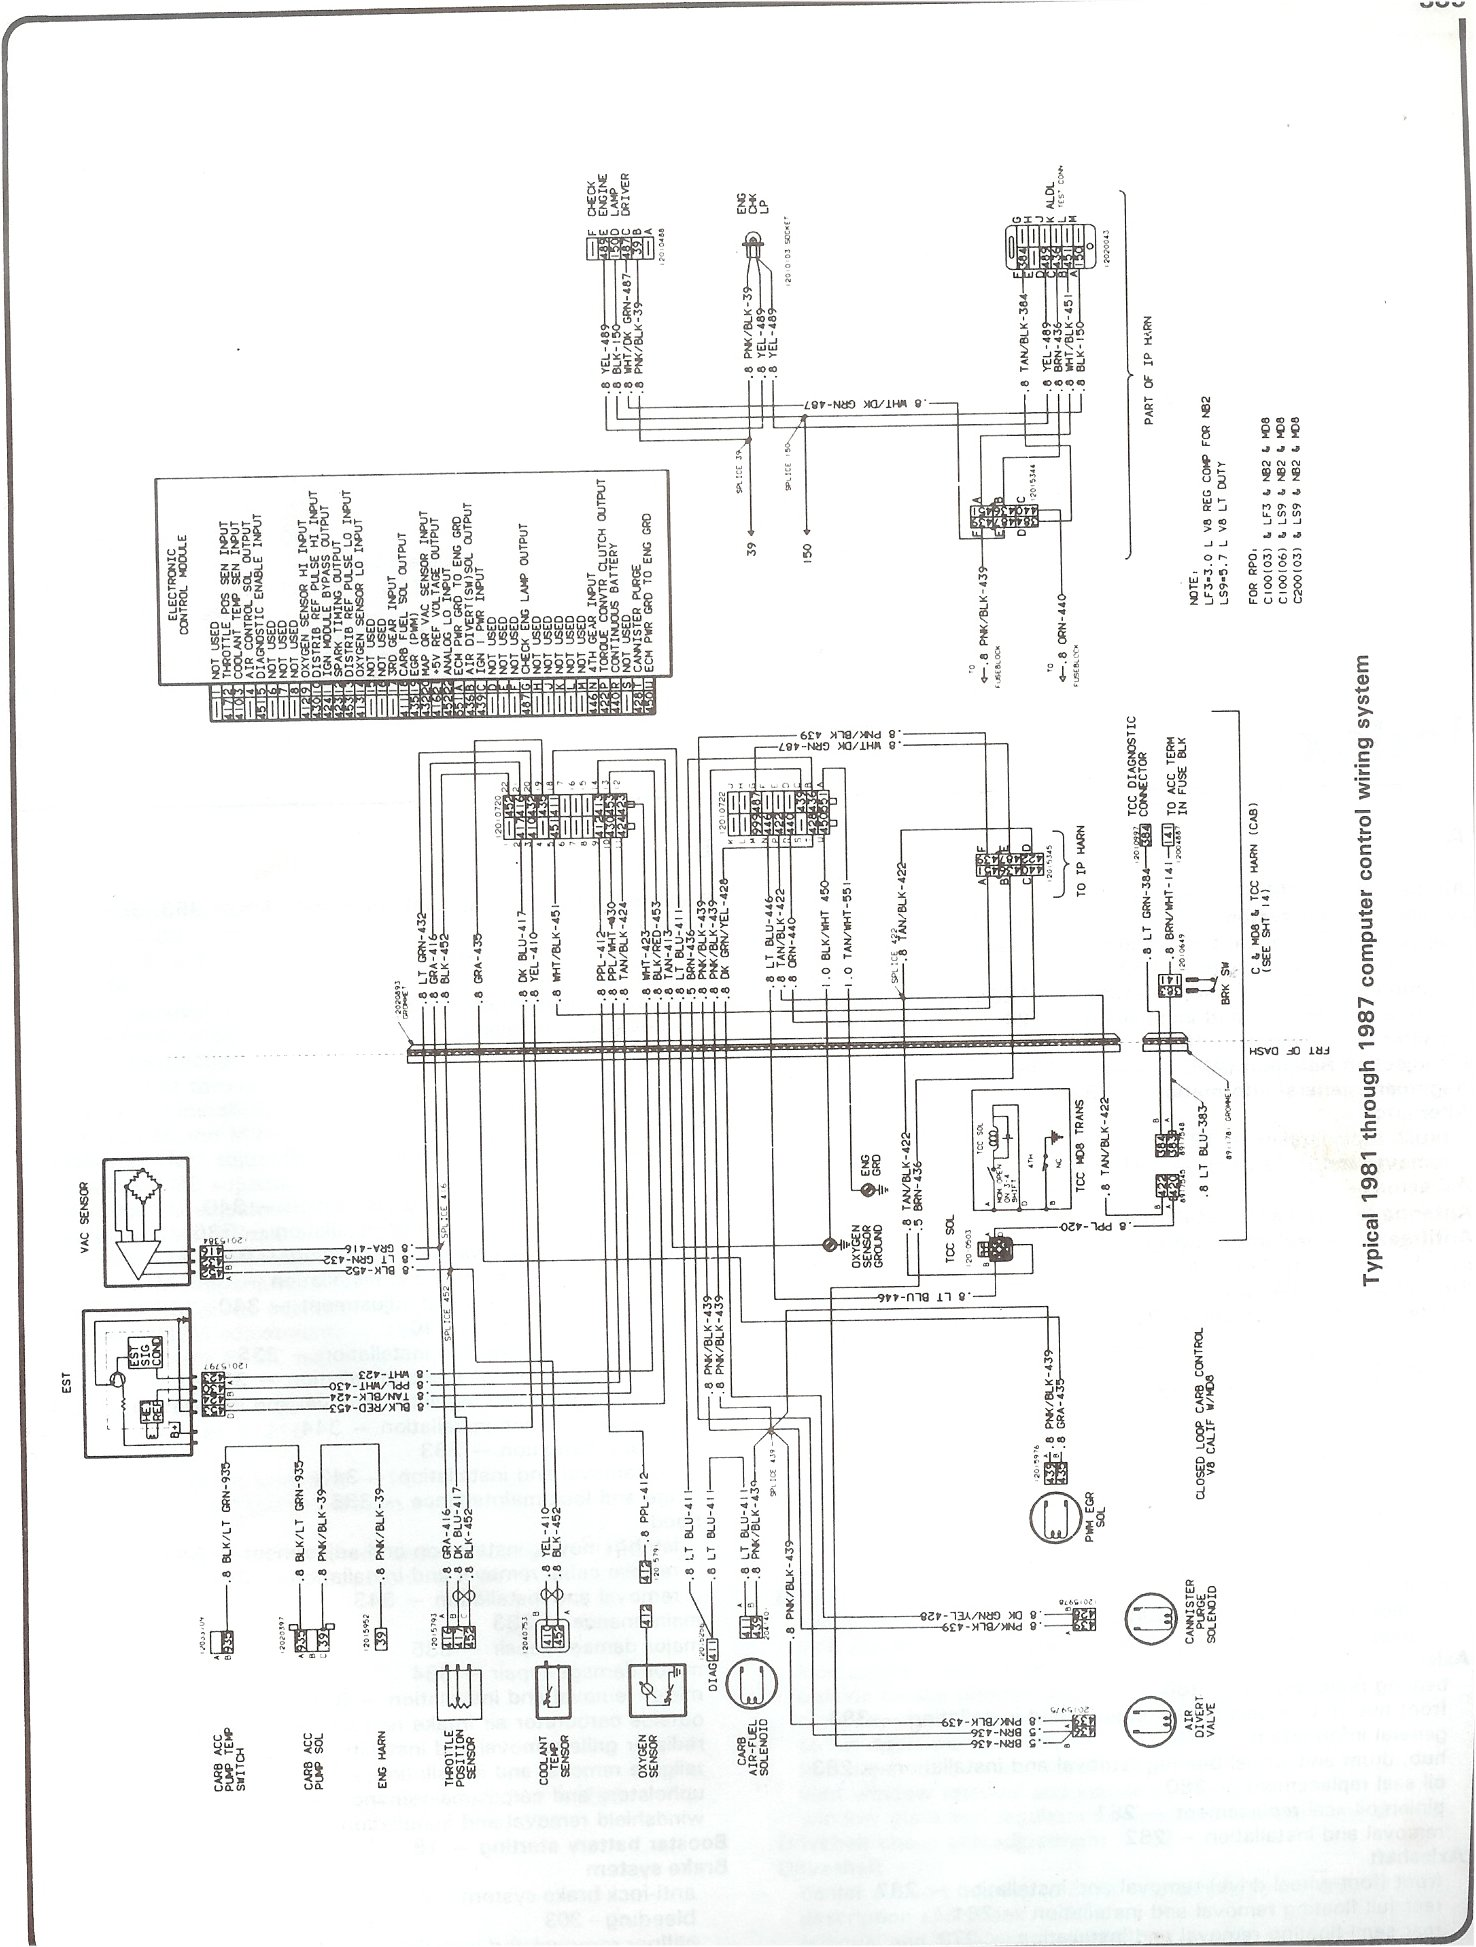 81 87_computer_control_wiring complete 73 87 wiring diagrams 1985 chevy truck wiring diagram at nearapp.co